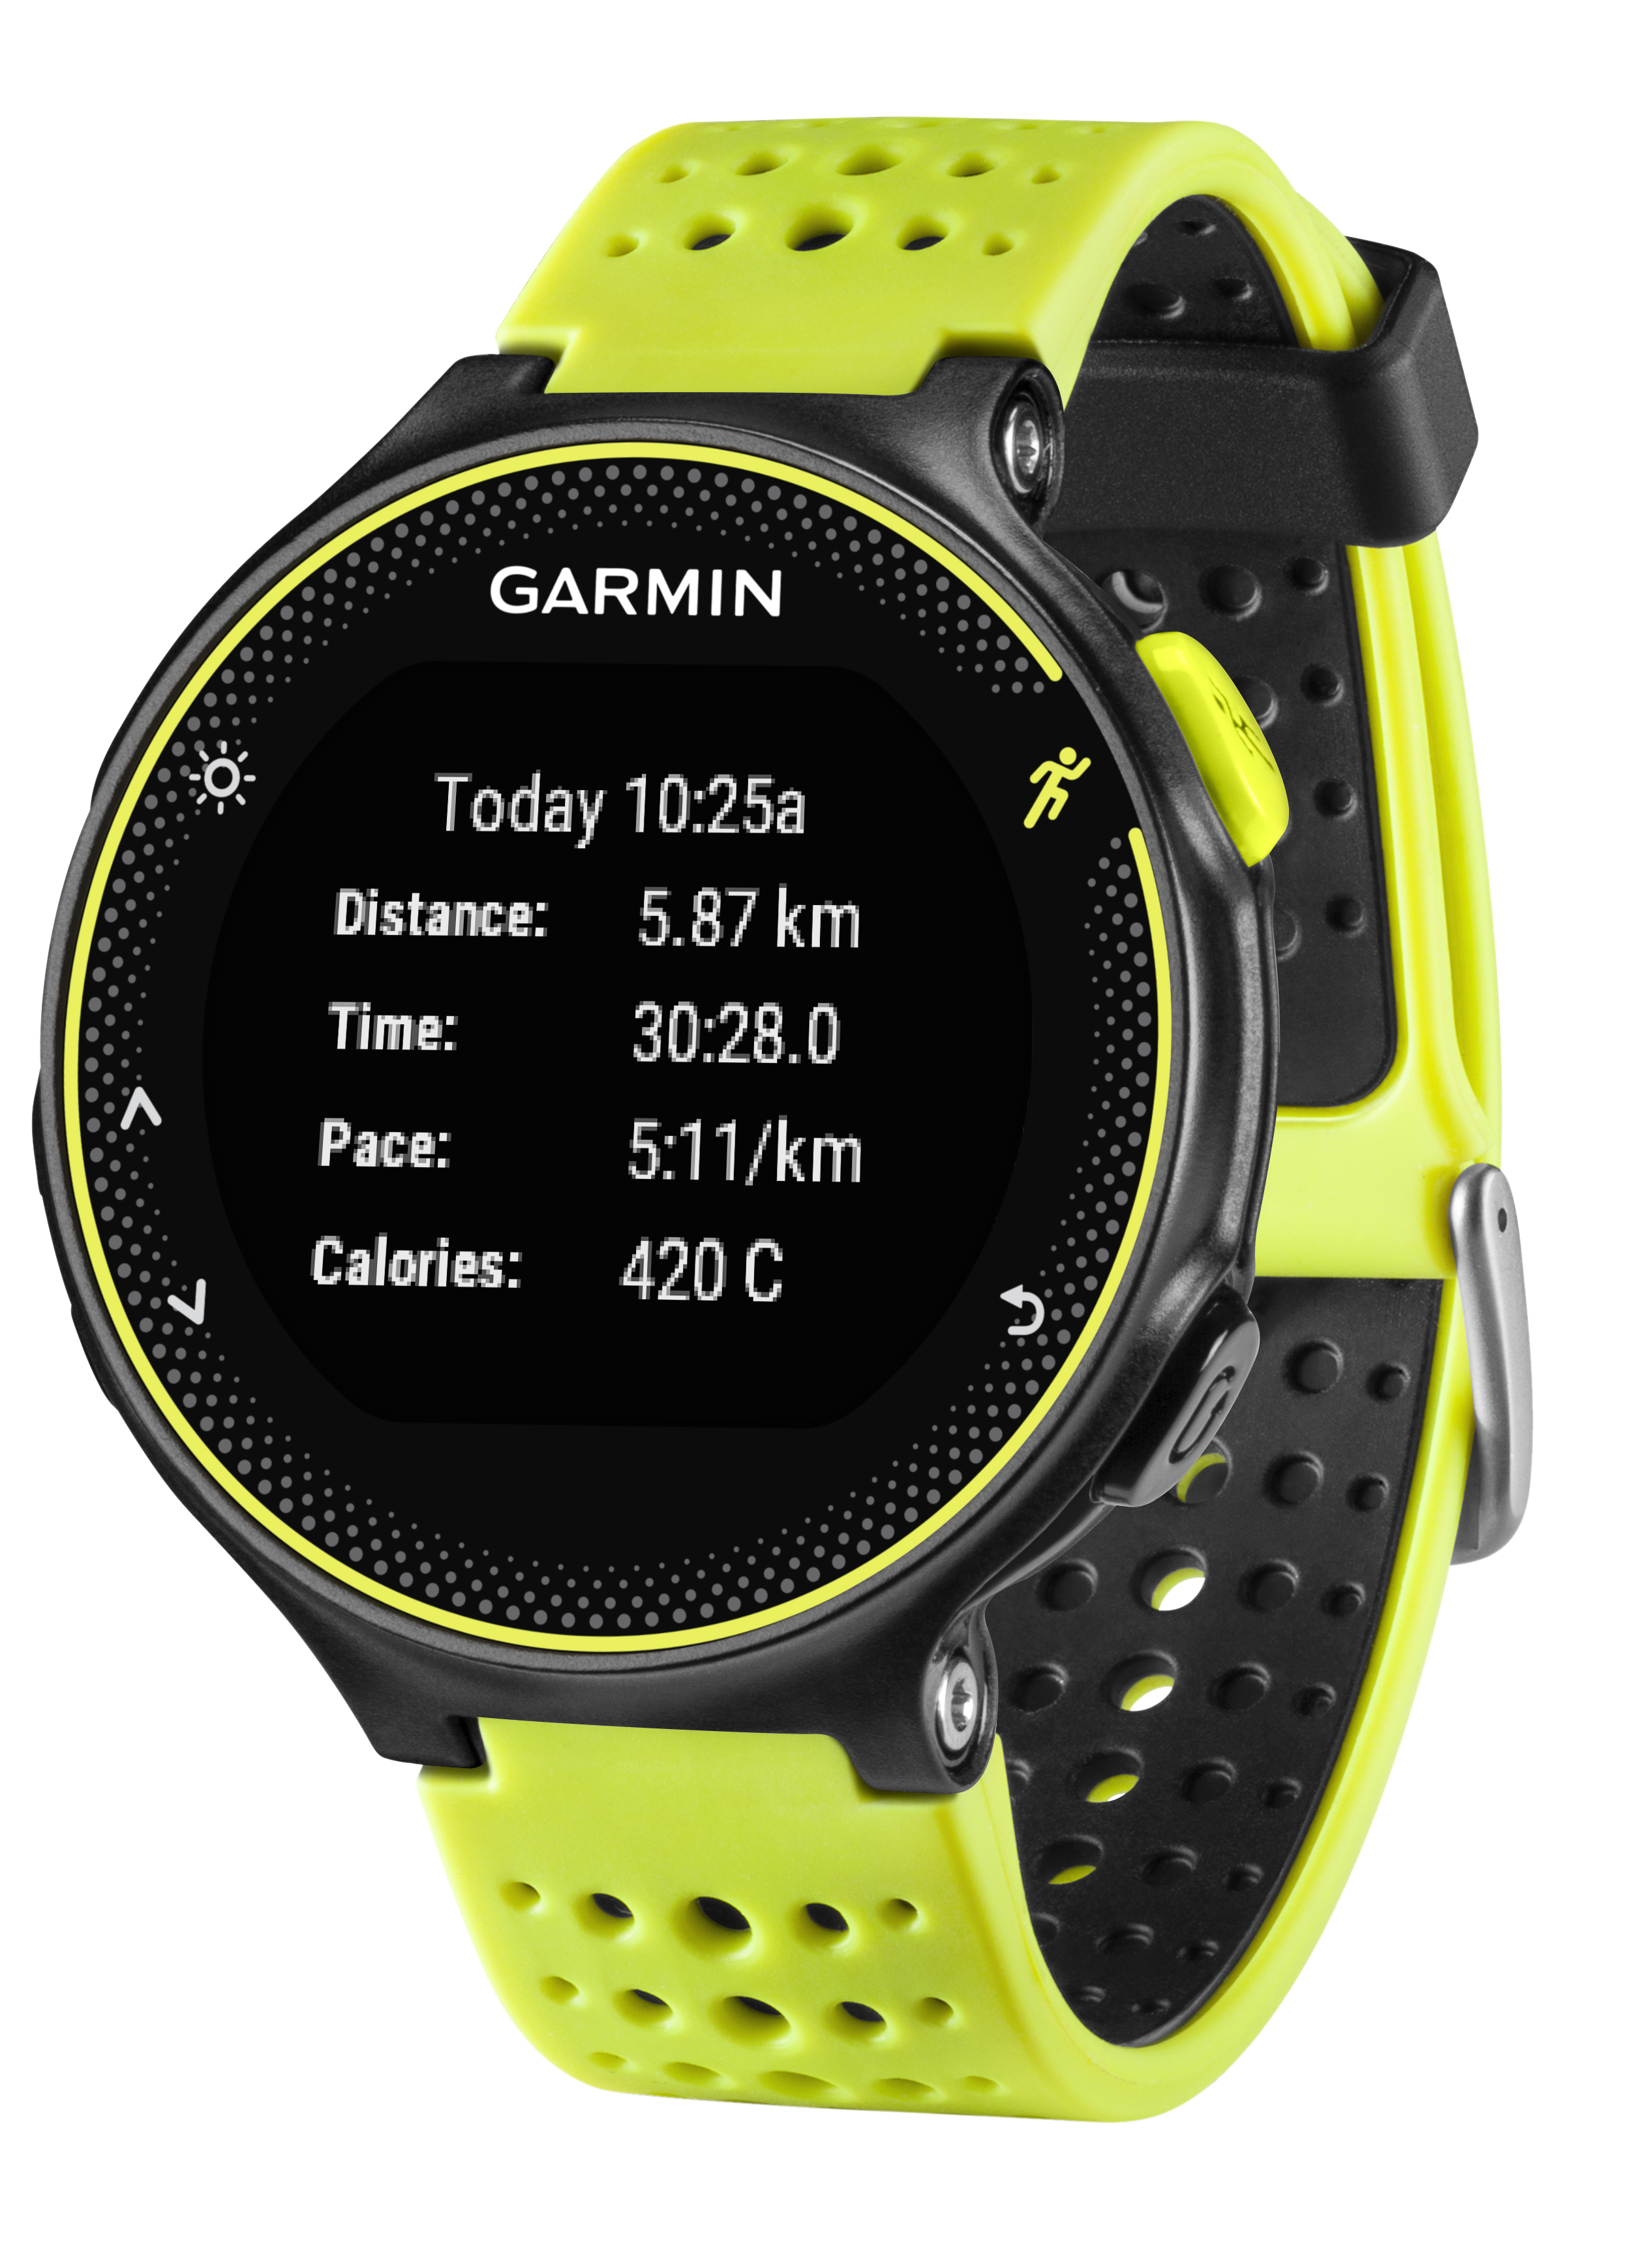 watches readable chroma tactix at garmin guide ts systems resolution high index sunlight gps watch s display bravo sportsman product